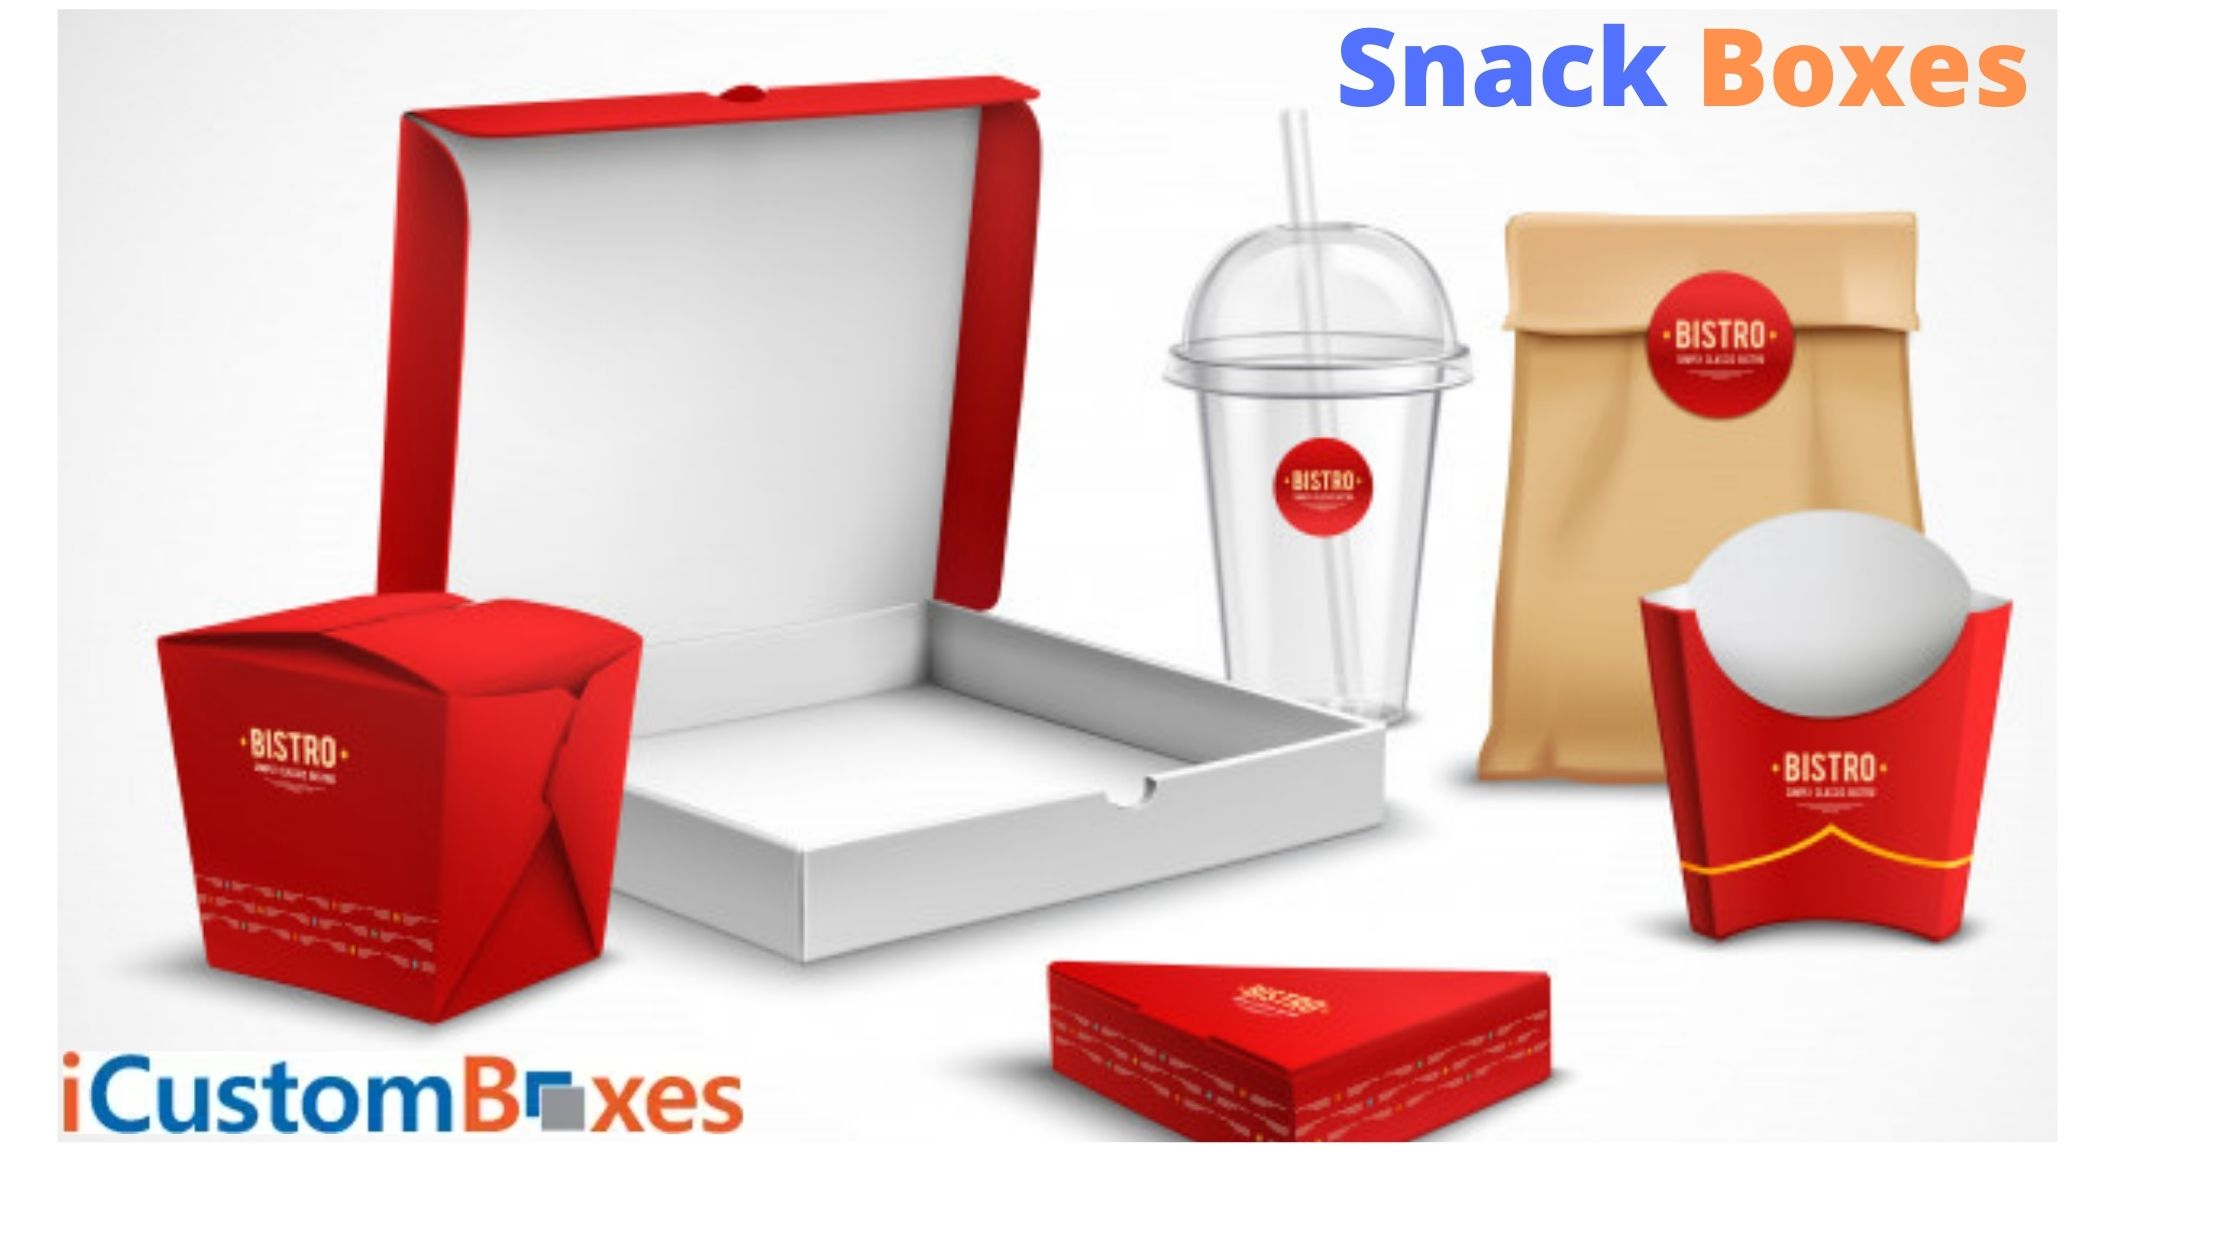 Customized Top NO 1 Snack Boxes Wholesale at ICustomBoxes